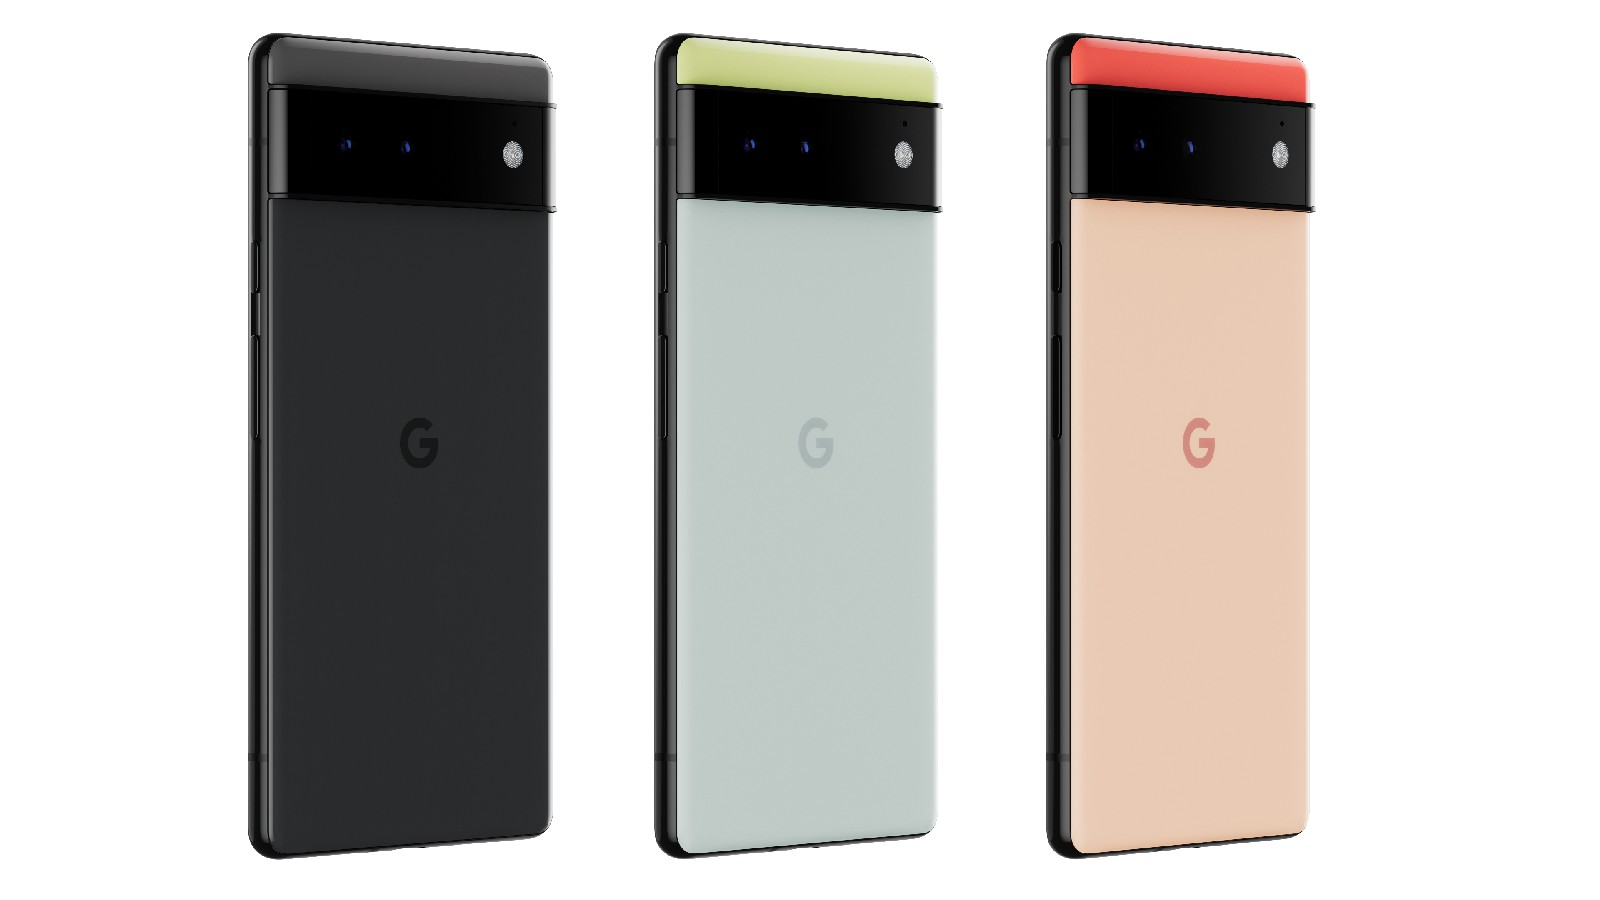 Three Pixel 6 phones. From left to right, their color schemes are black/black, green/blue and red/peach.